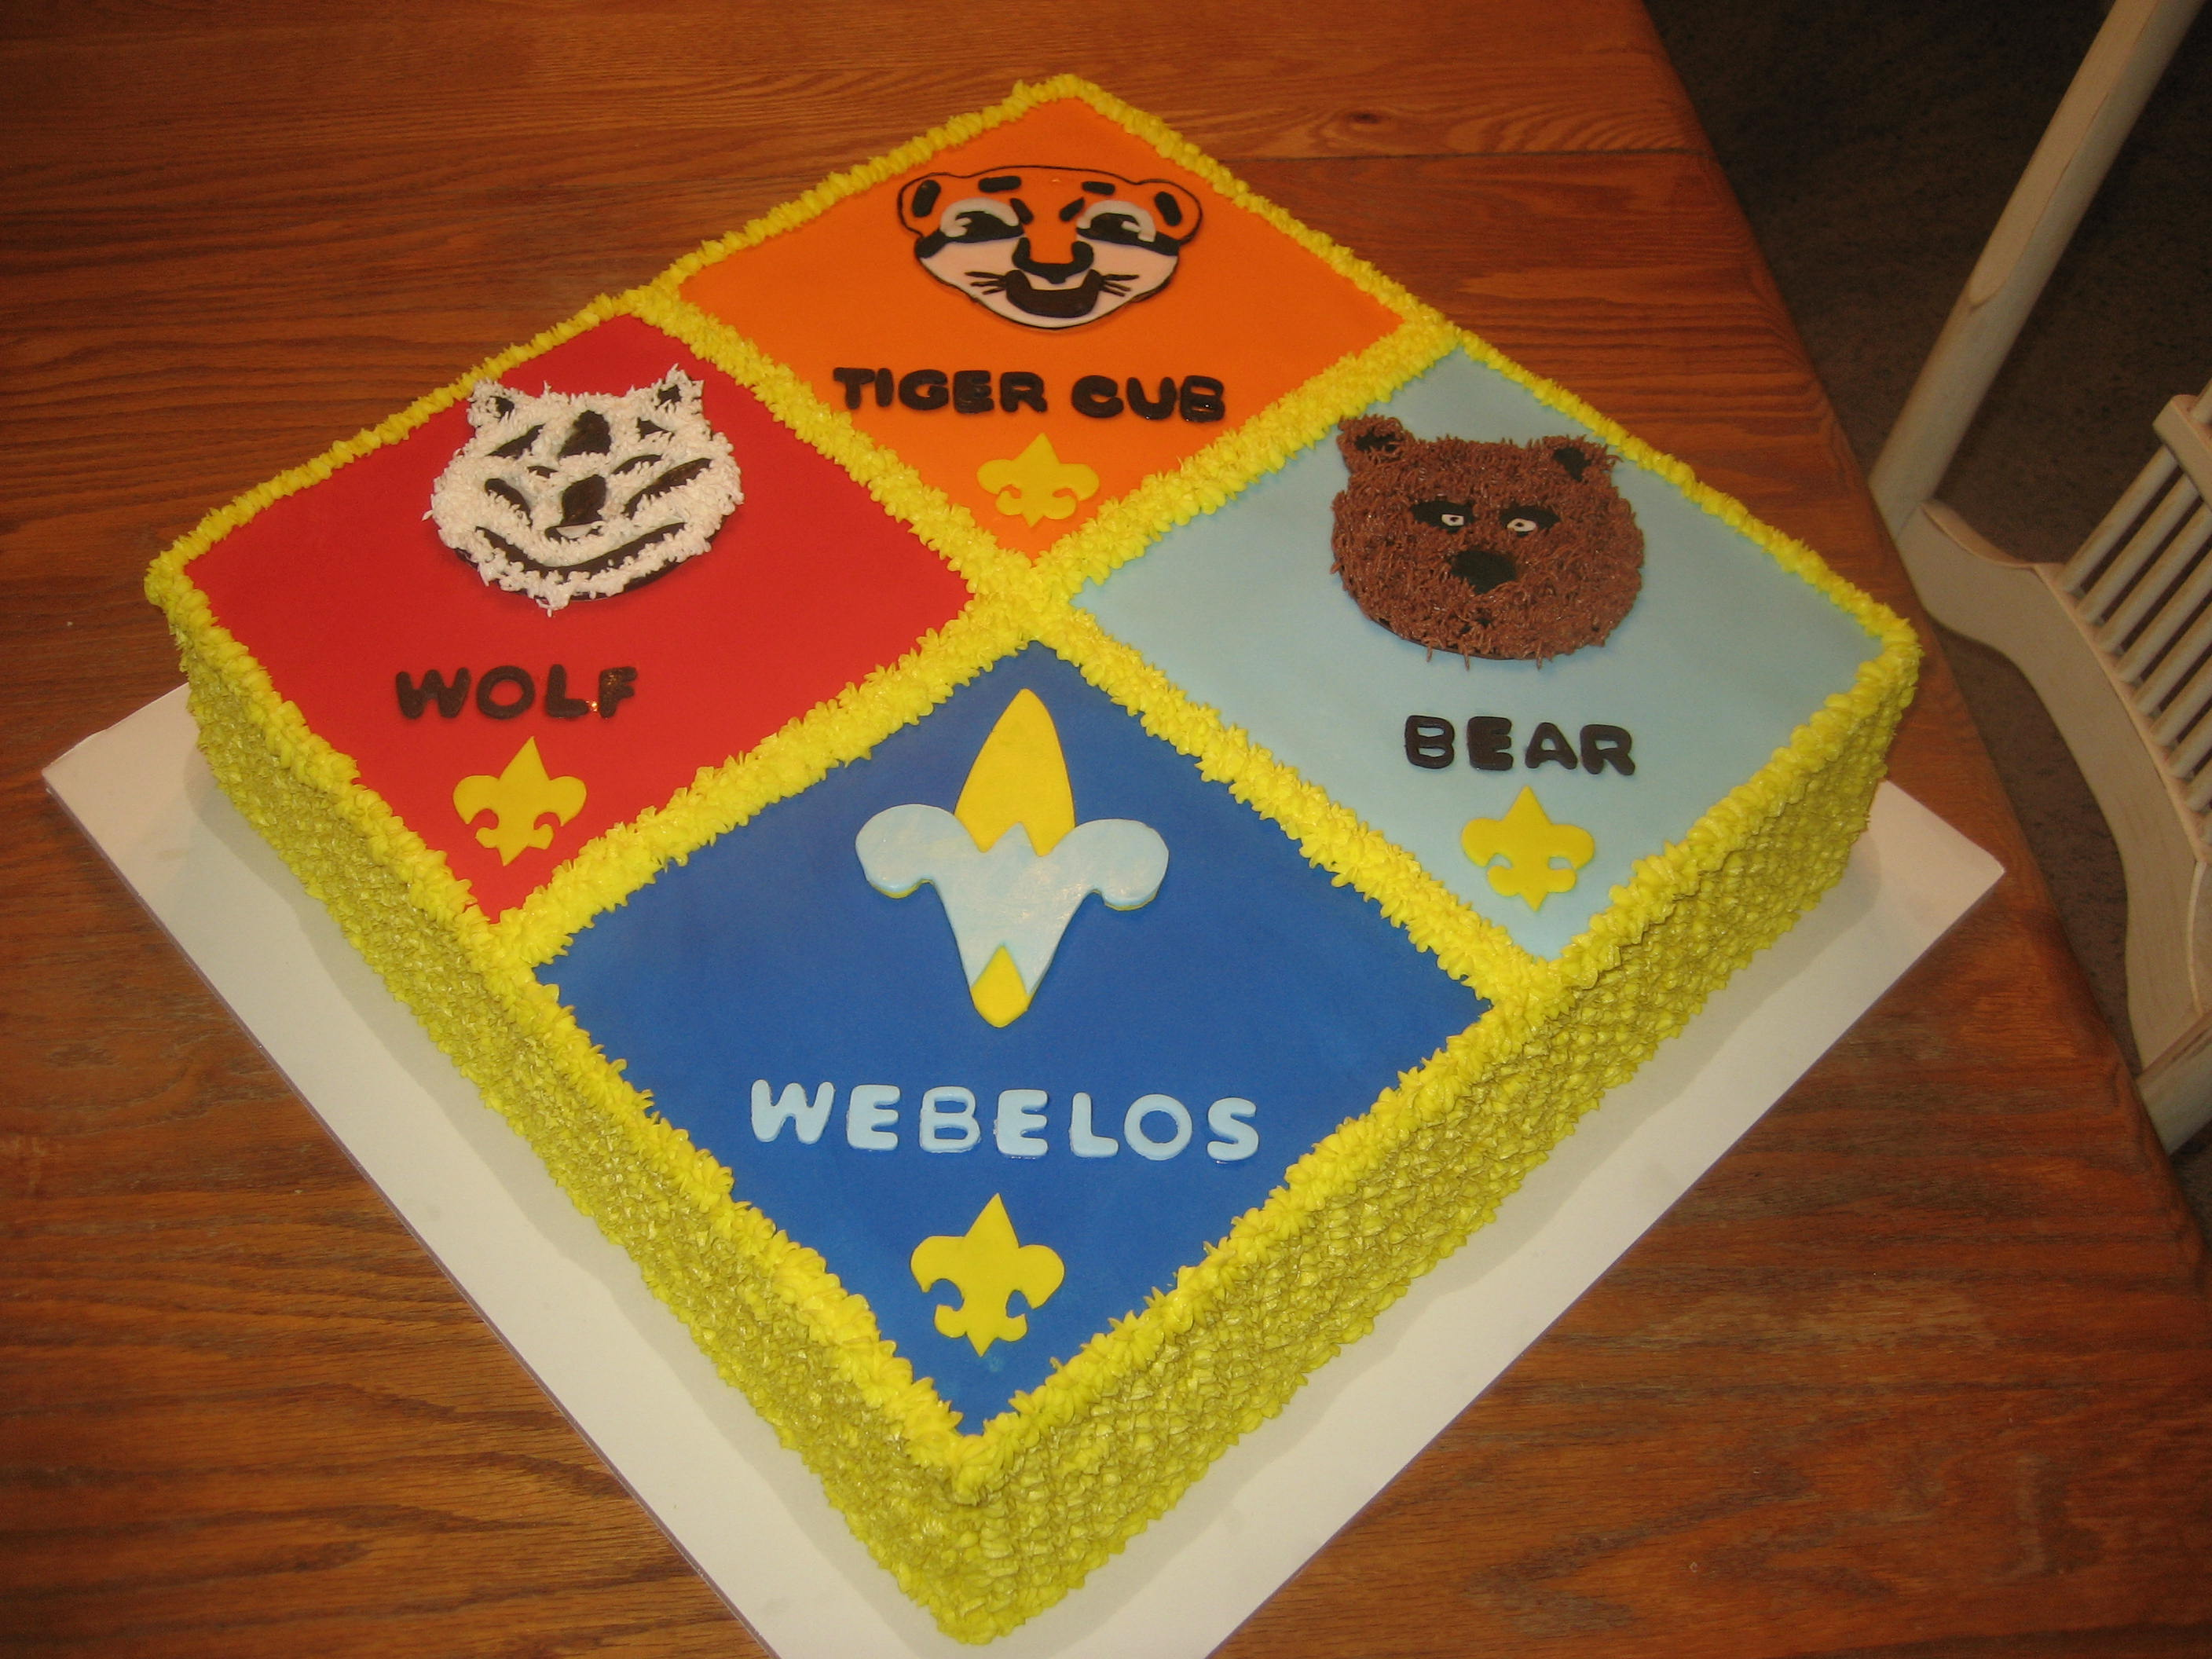 Wolf Cub Scout Cake Ideas 54773 The Cub Scouts Kimberly S